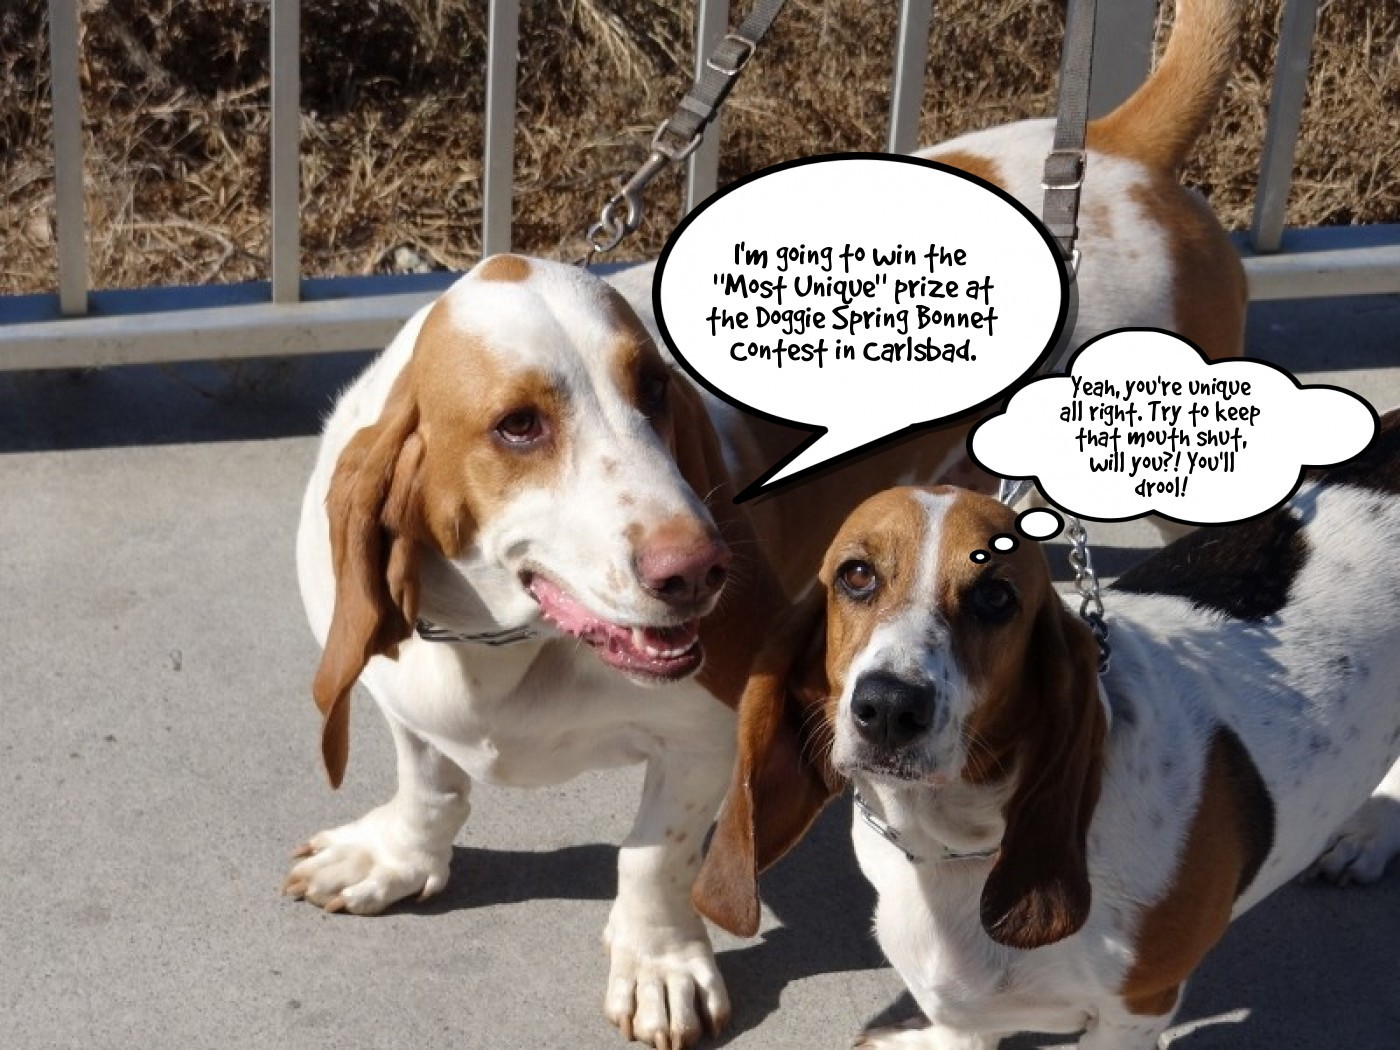 Bassets and Doggie Spring Bonnet Contest